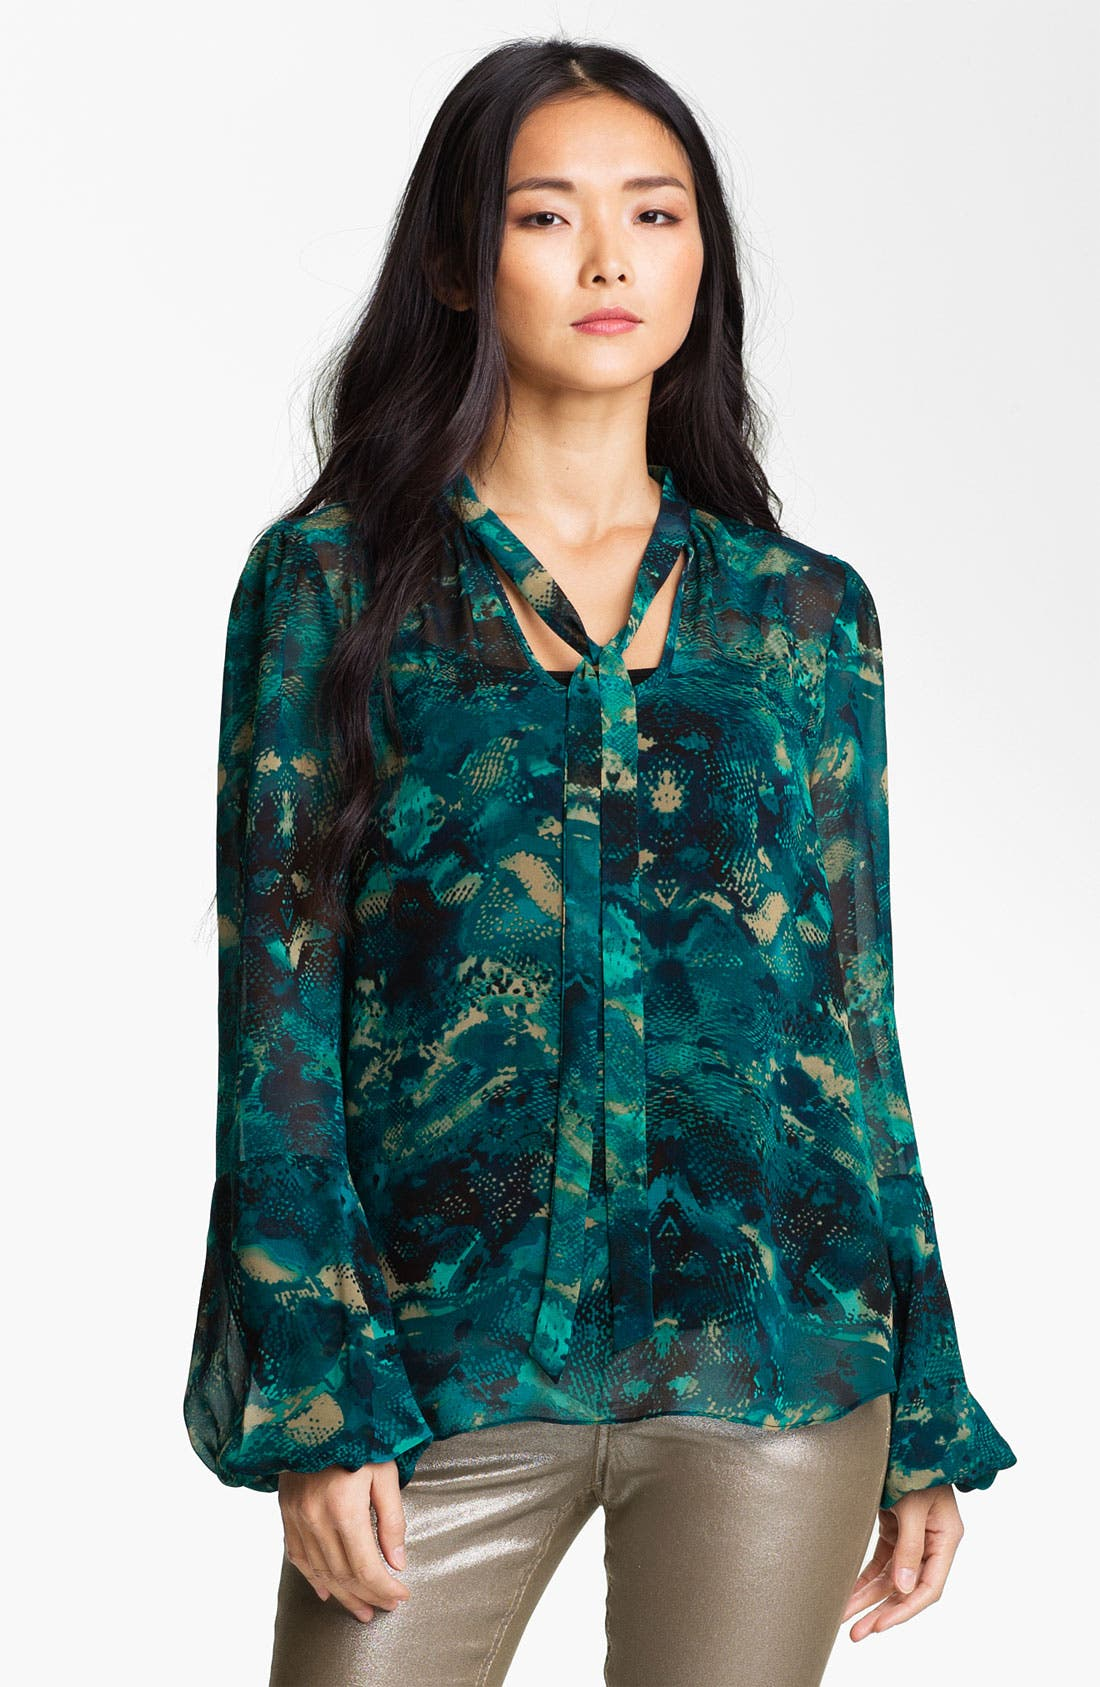 Alternate Image 1 Selected - Anne Klein Tie Neck Snakeskin Print Blouse (Petite)